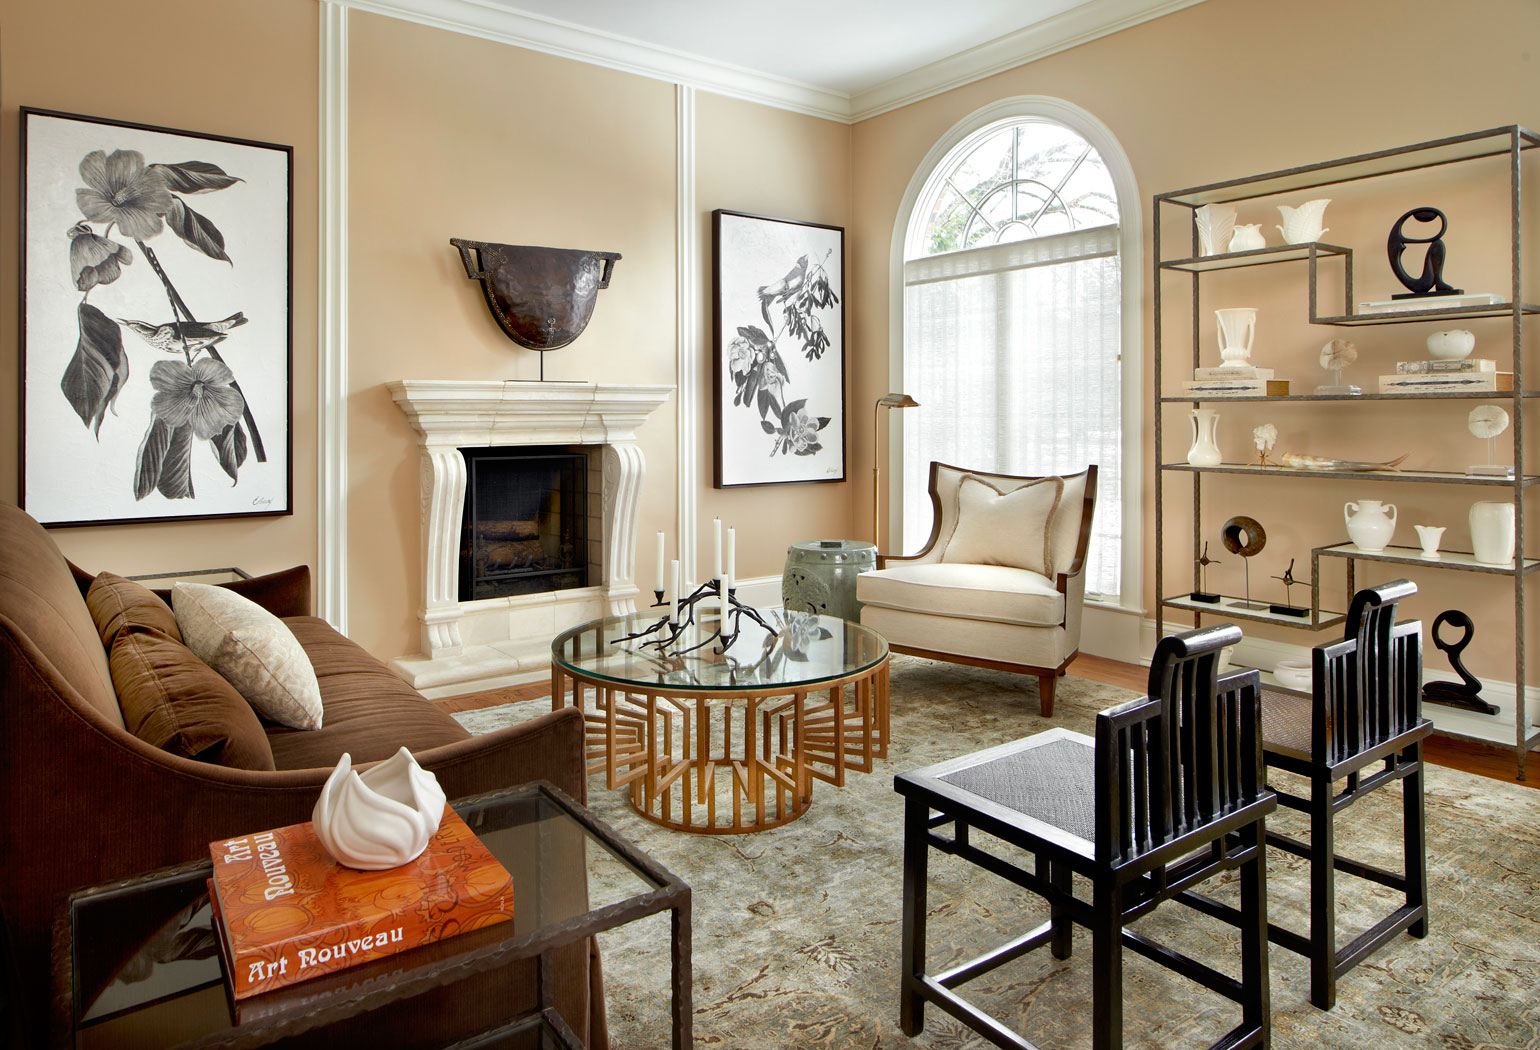 Best Interior Designers In Chicago Lauren Coburn Best Interior Designers